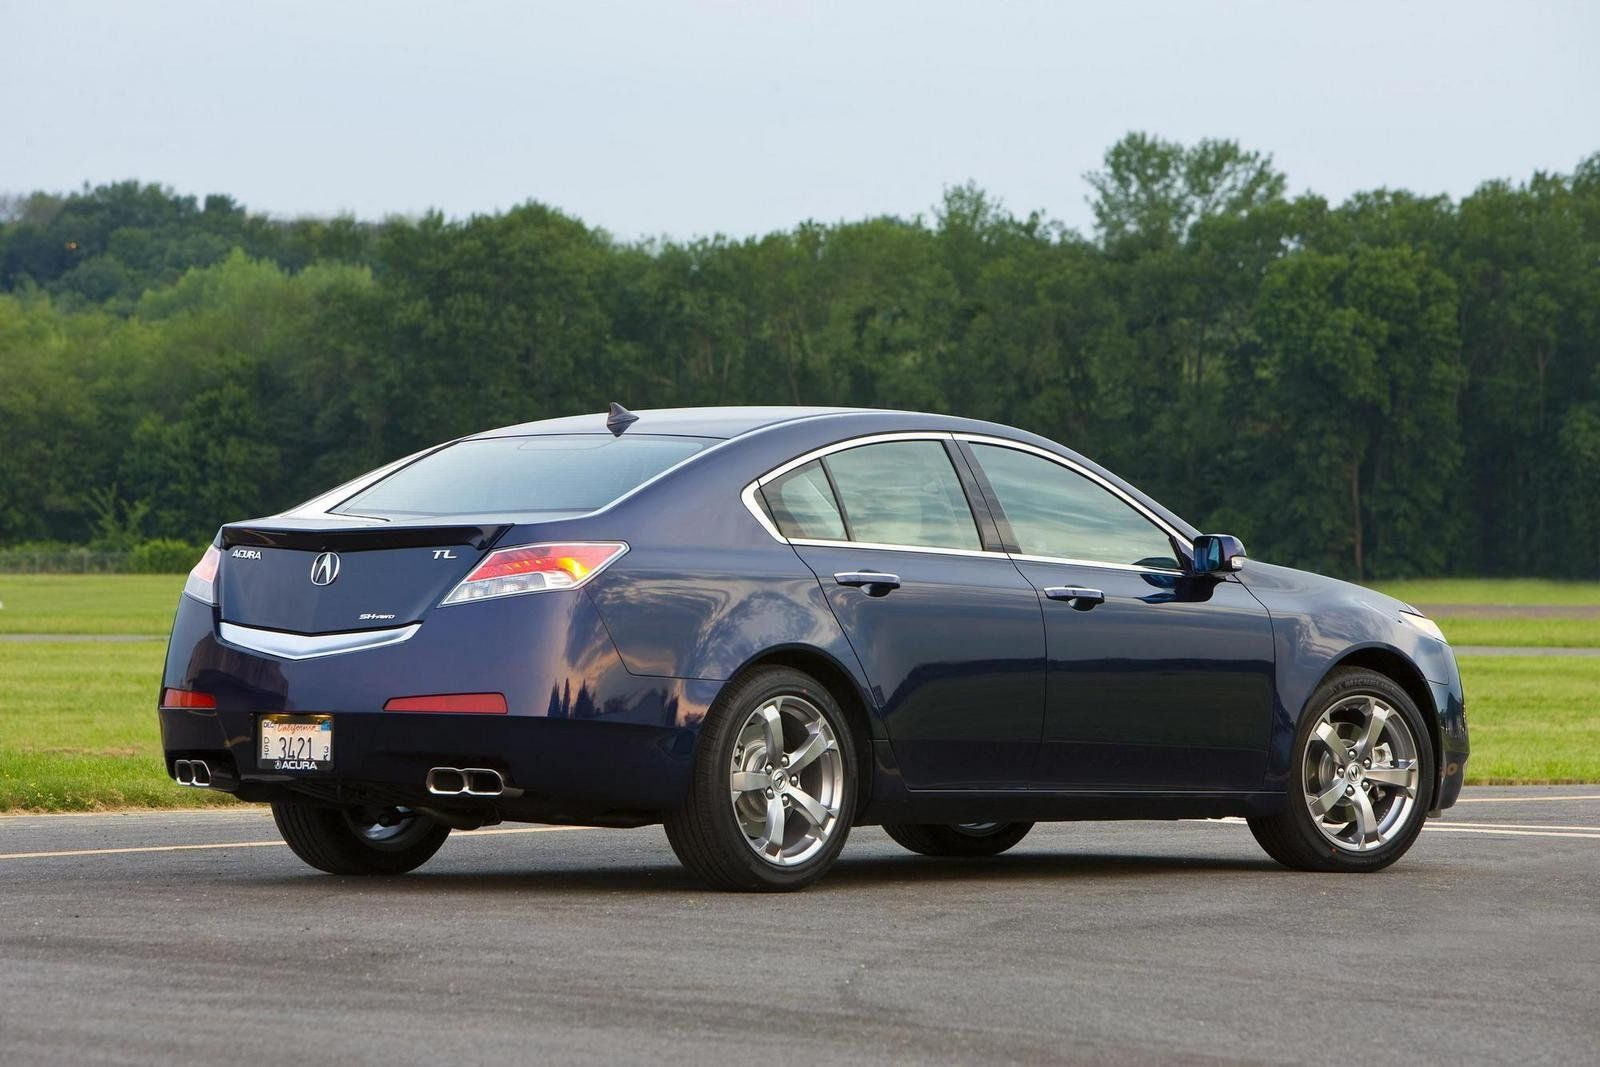 2010 Acura TL Picture 326177 car review @ Top Speed | acura_models ...